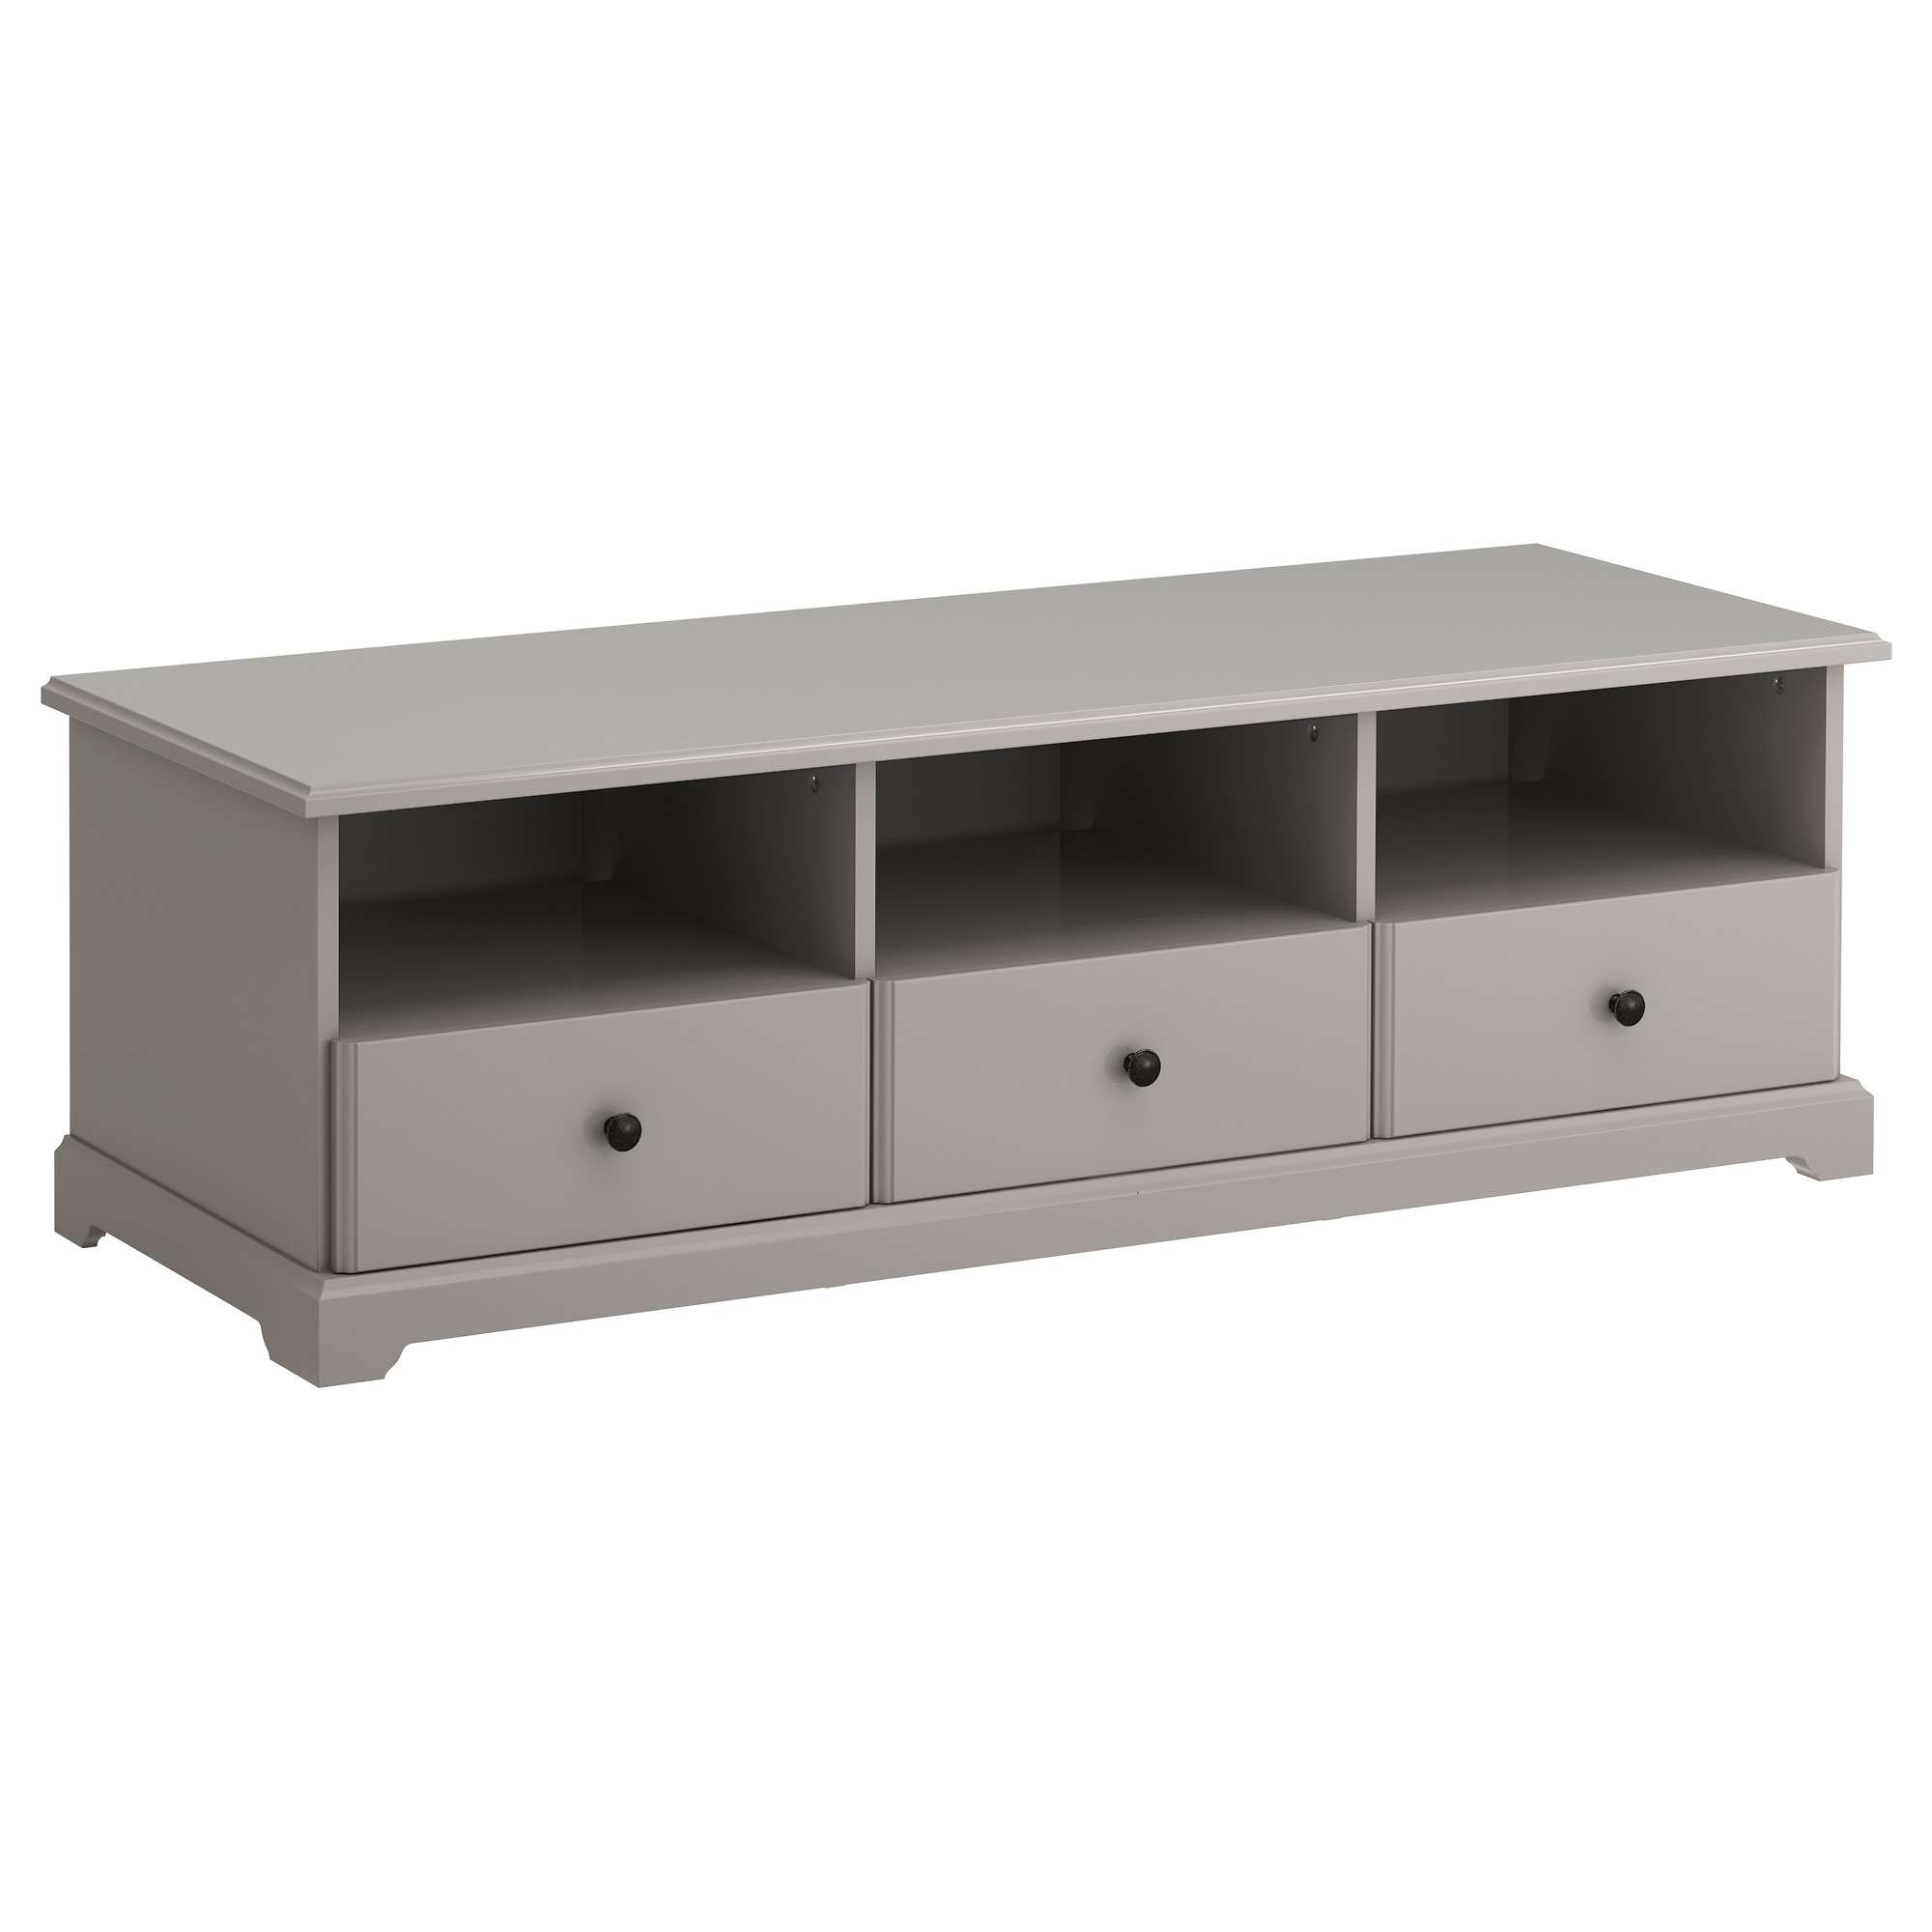 Tv Stands & Tv Units | Ikea Pertaining To Tv Stands And Cabinets (View 14 of 15)